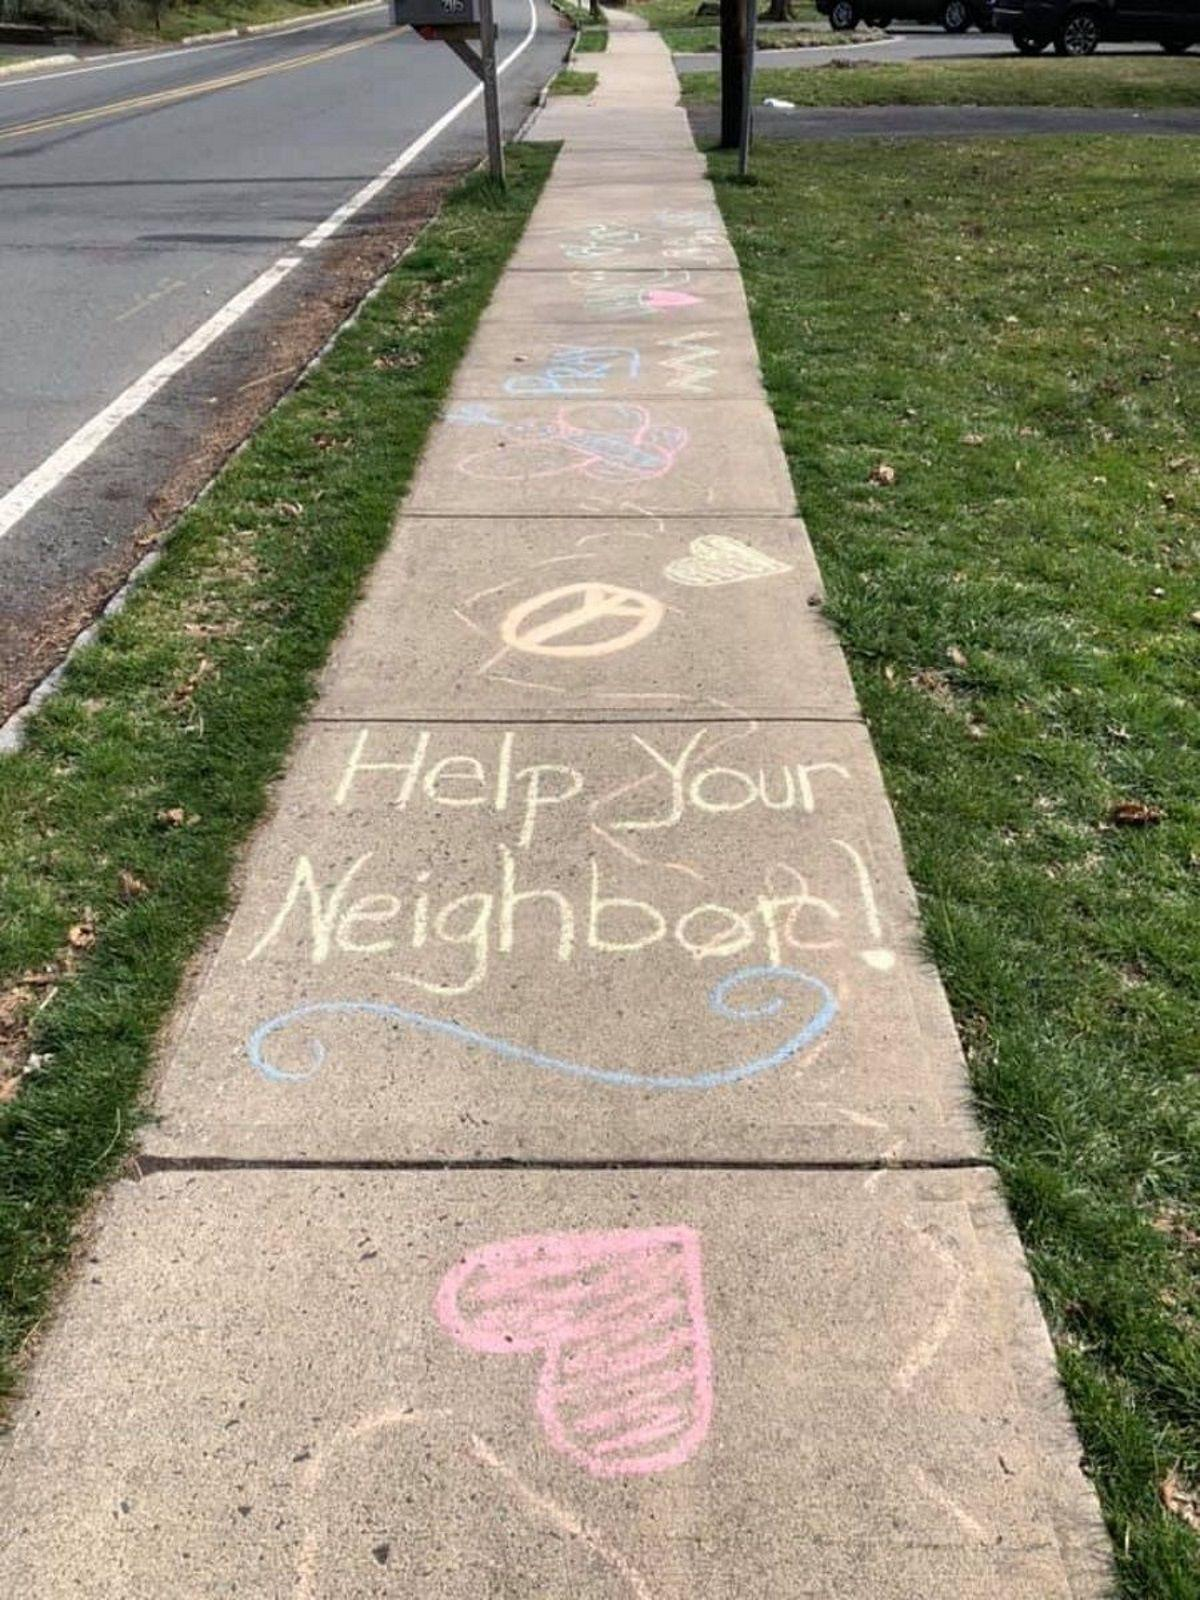 'Help your neighbor!'